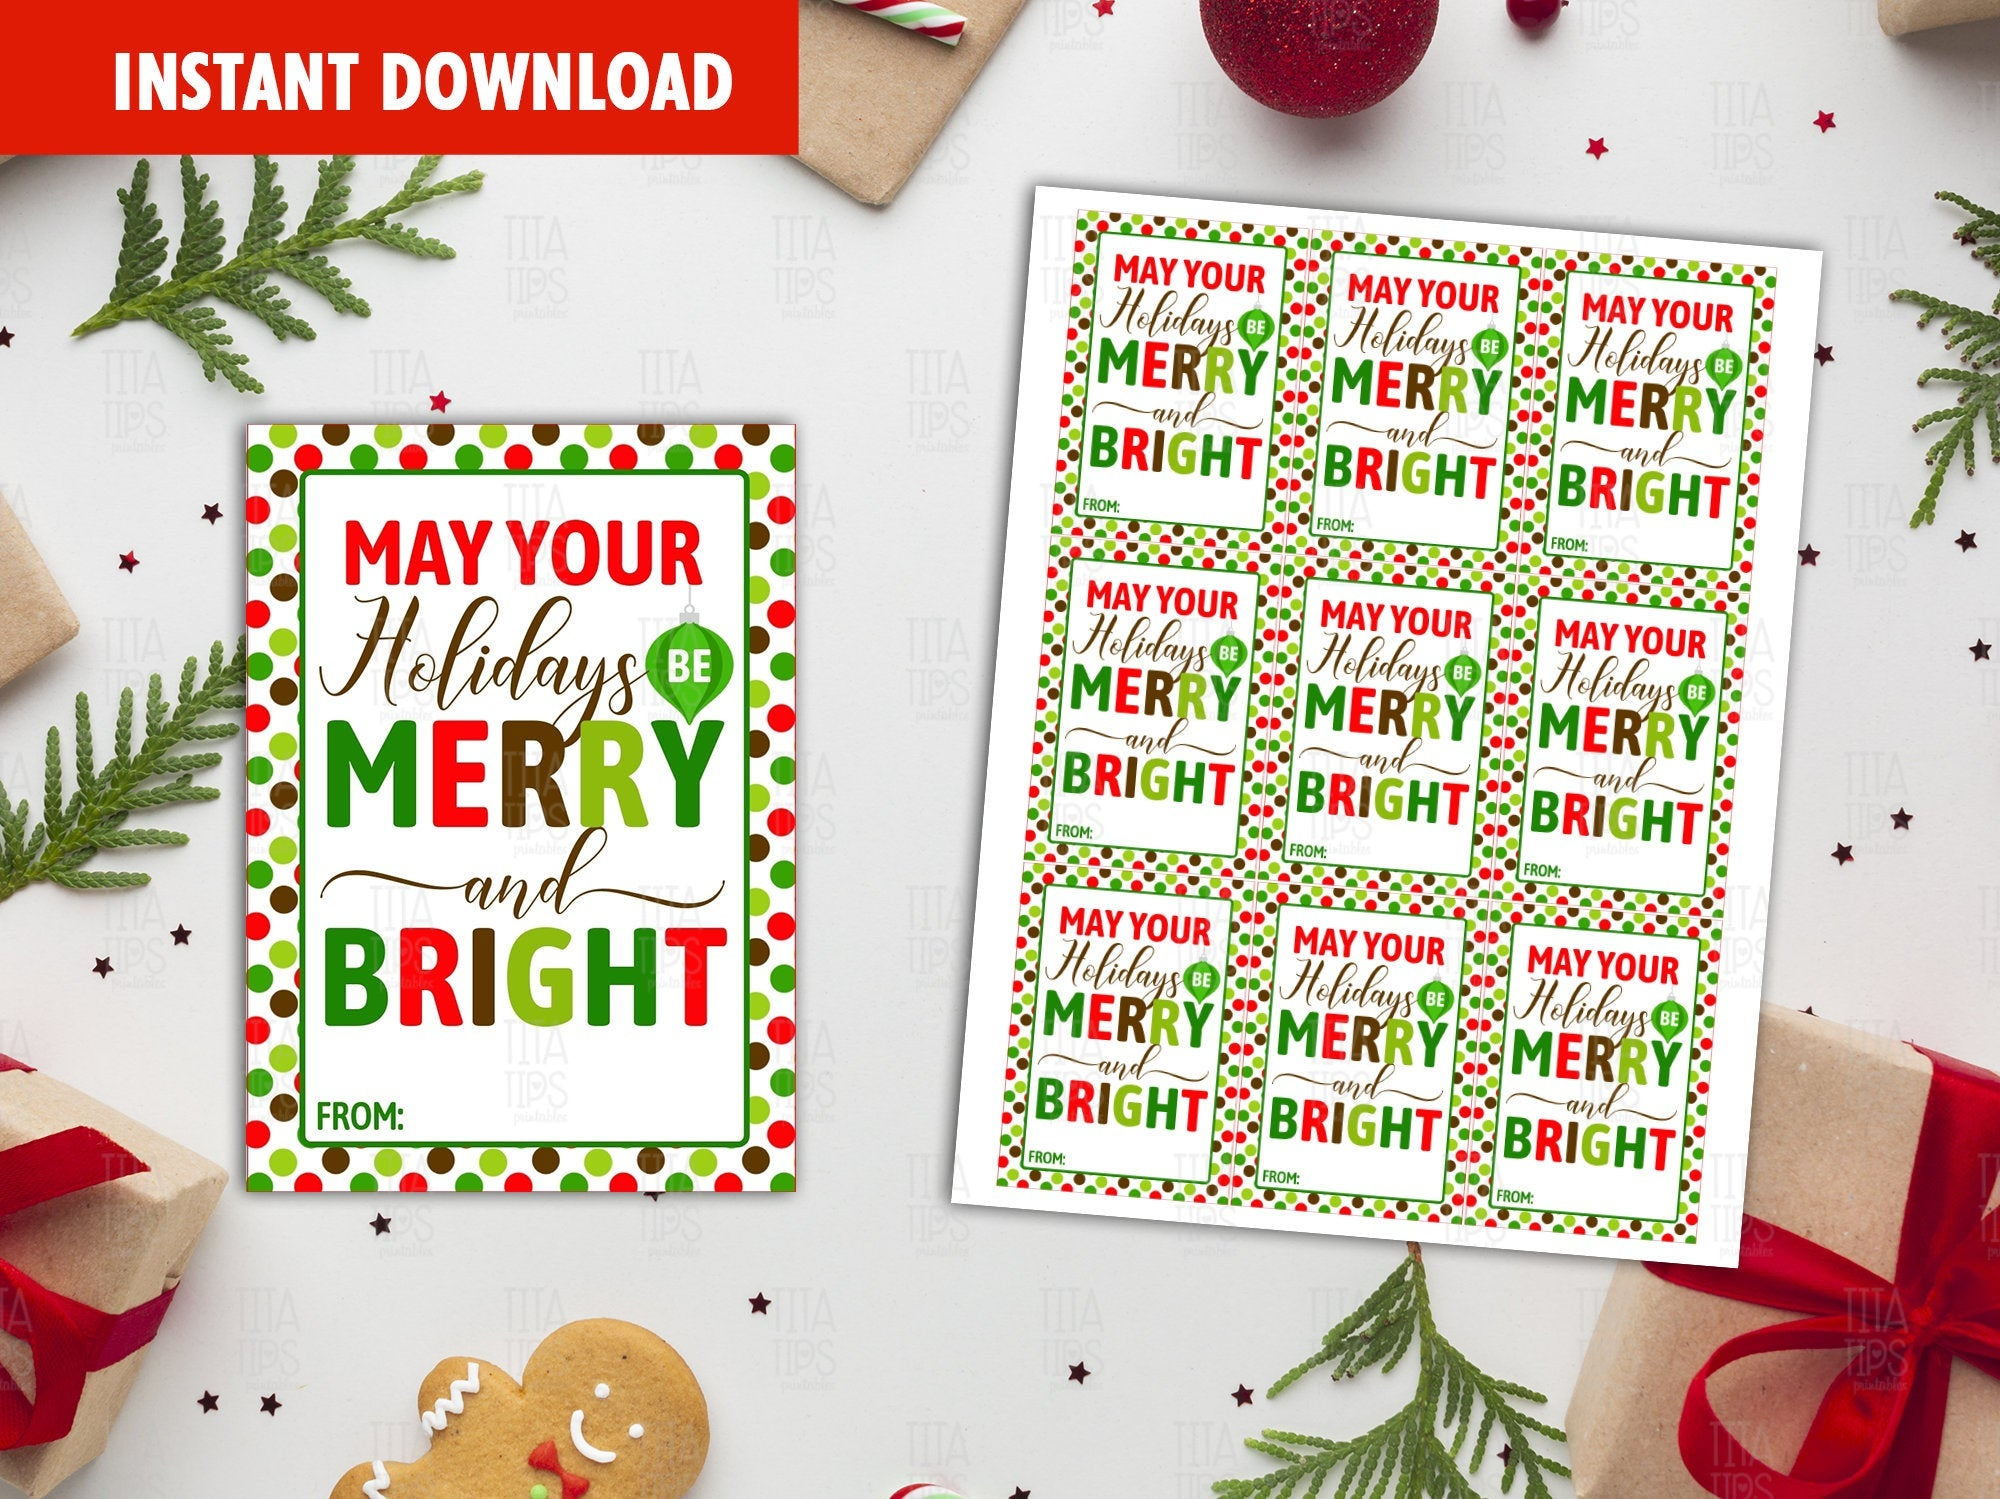 May Your Holidays Be Merry And Bright,  Christmas Printable Card, Instant Download - TitaTipsPrintables